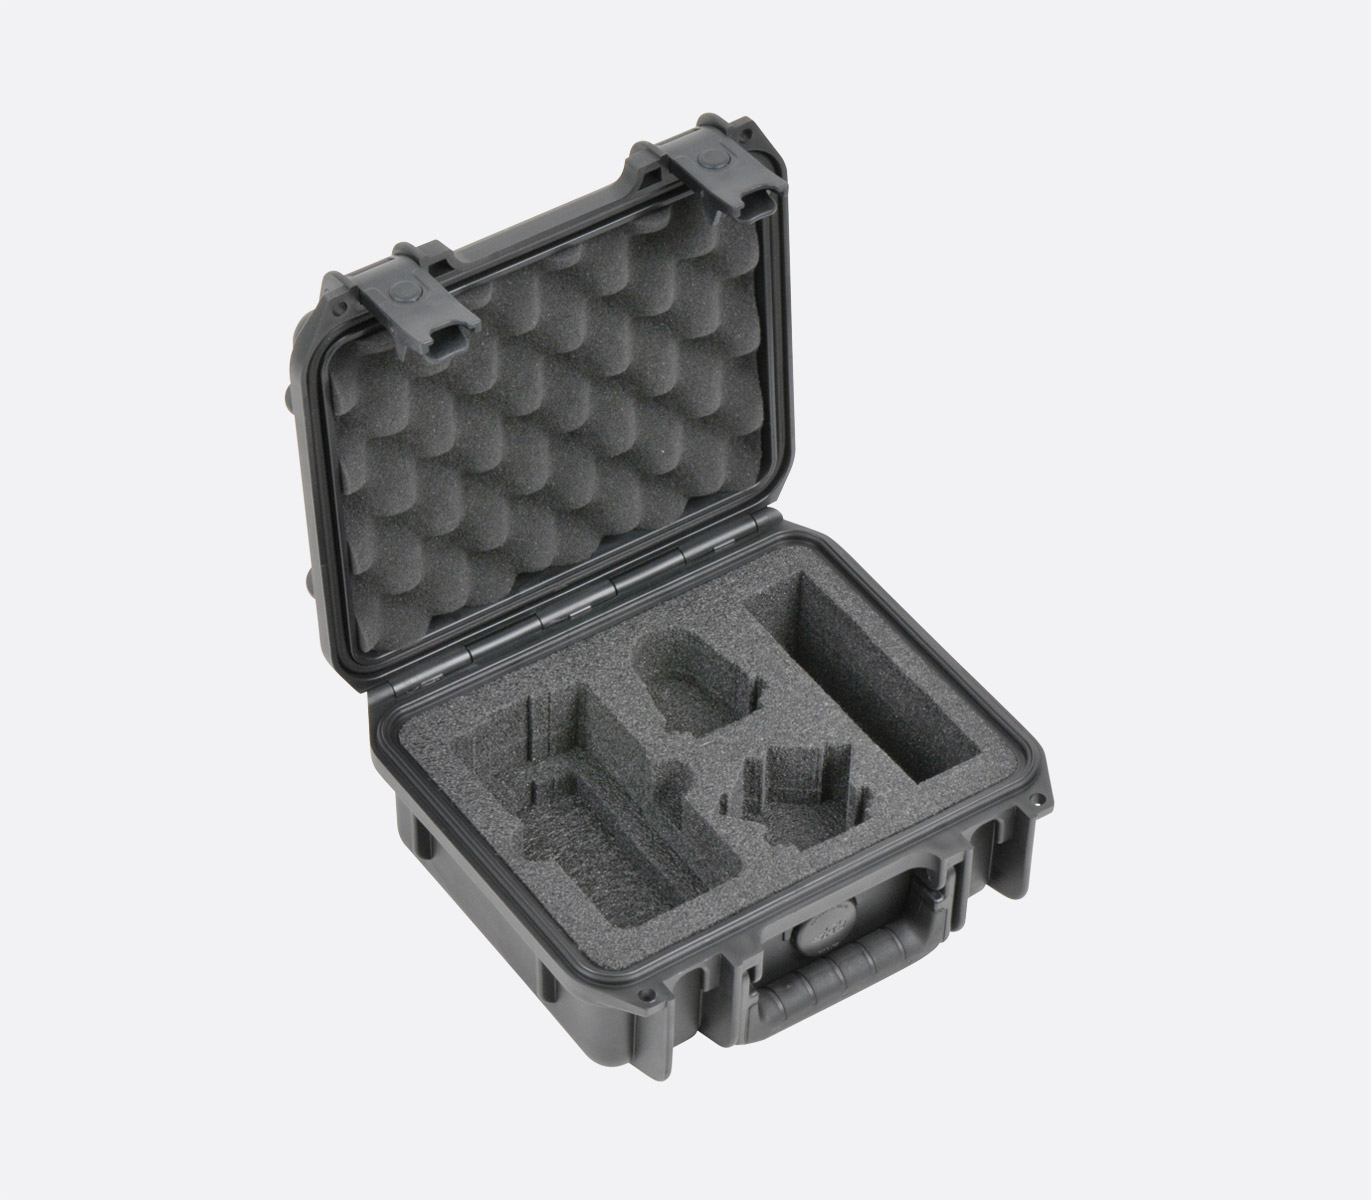 Skb 3i 0907 4 H6 Iseries Utility Case Waterproof For Zoom H6